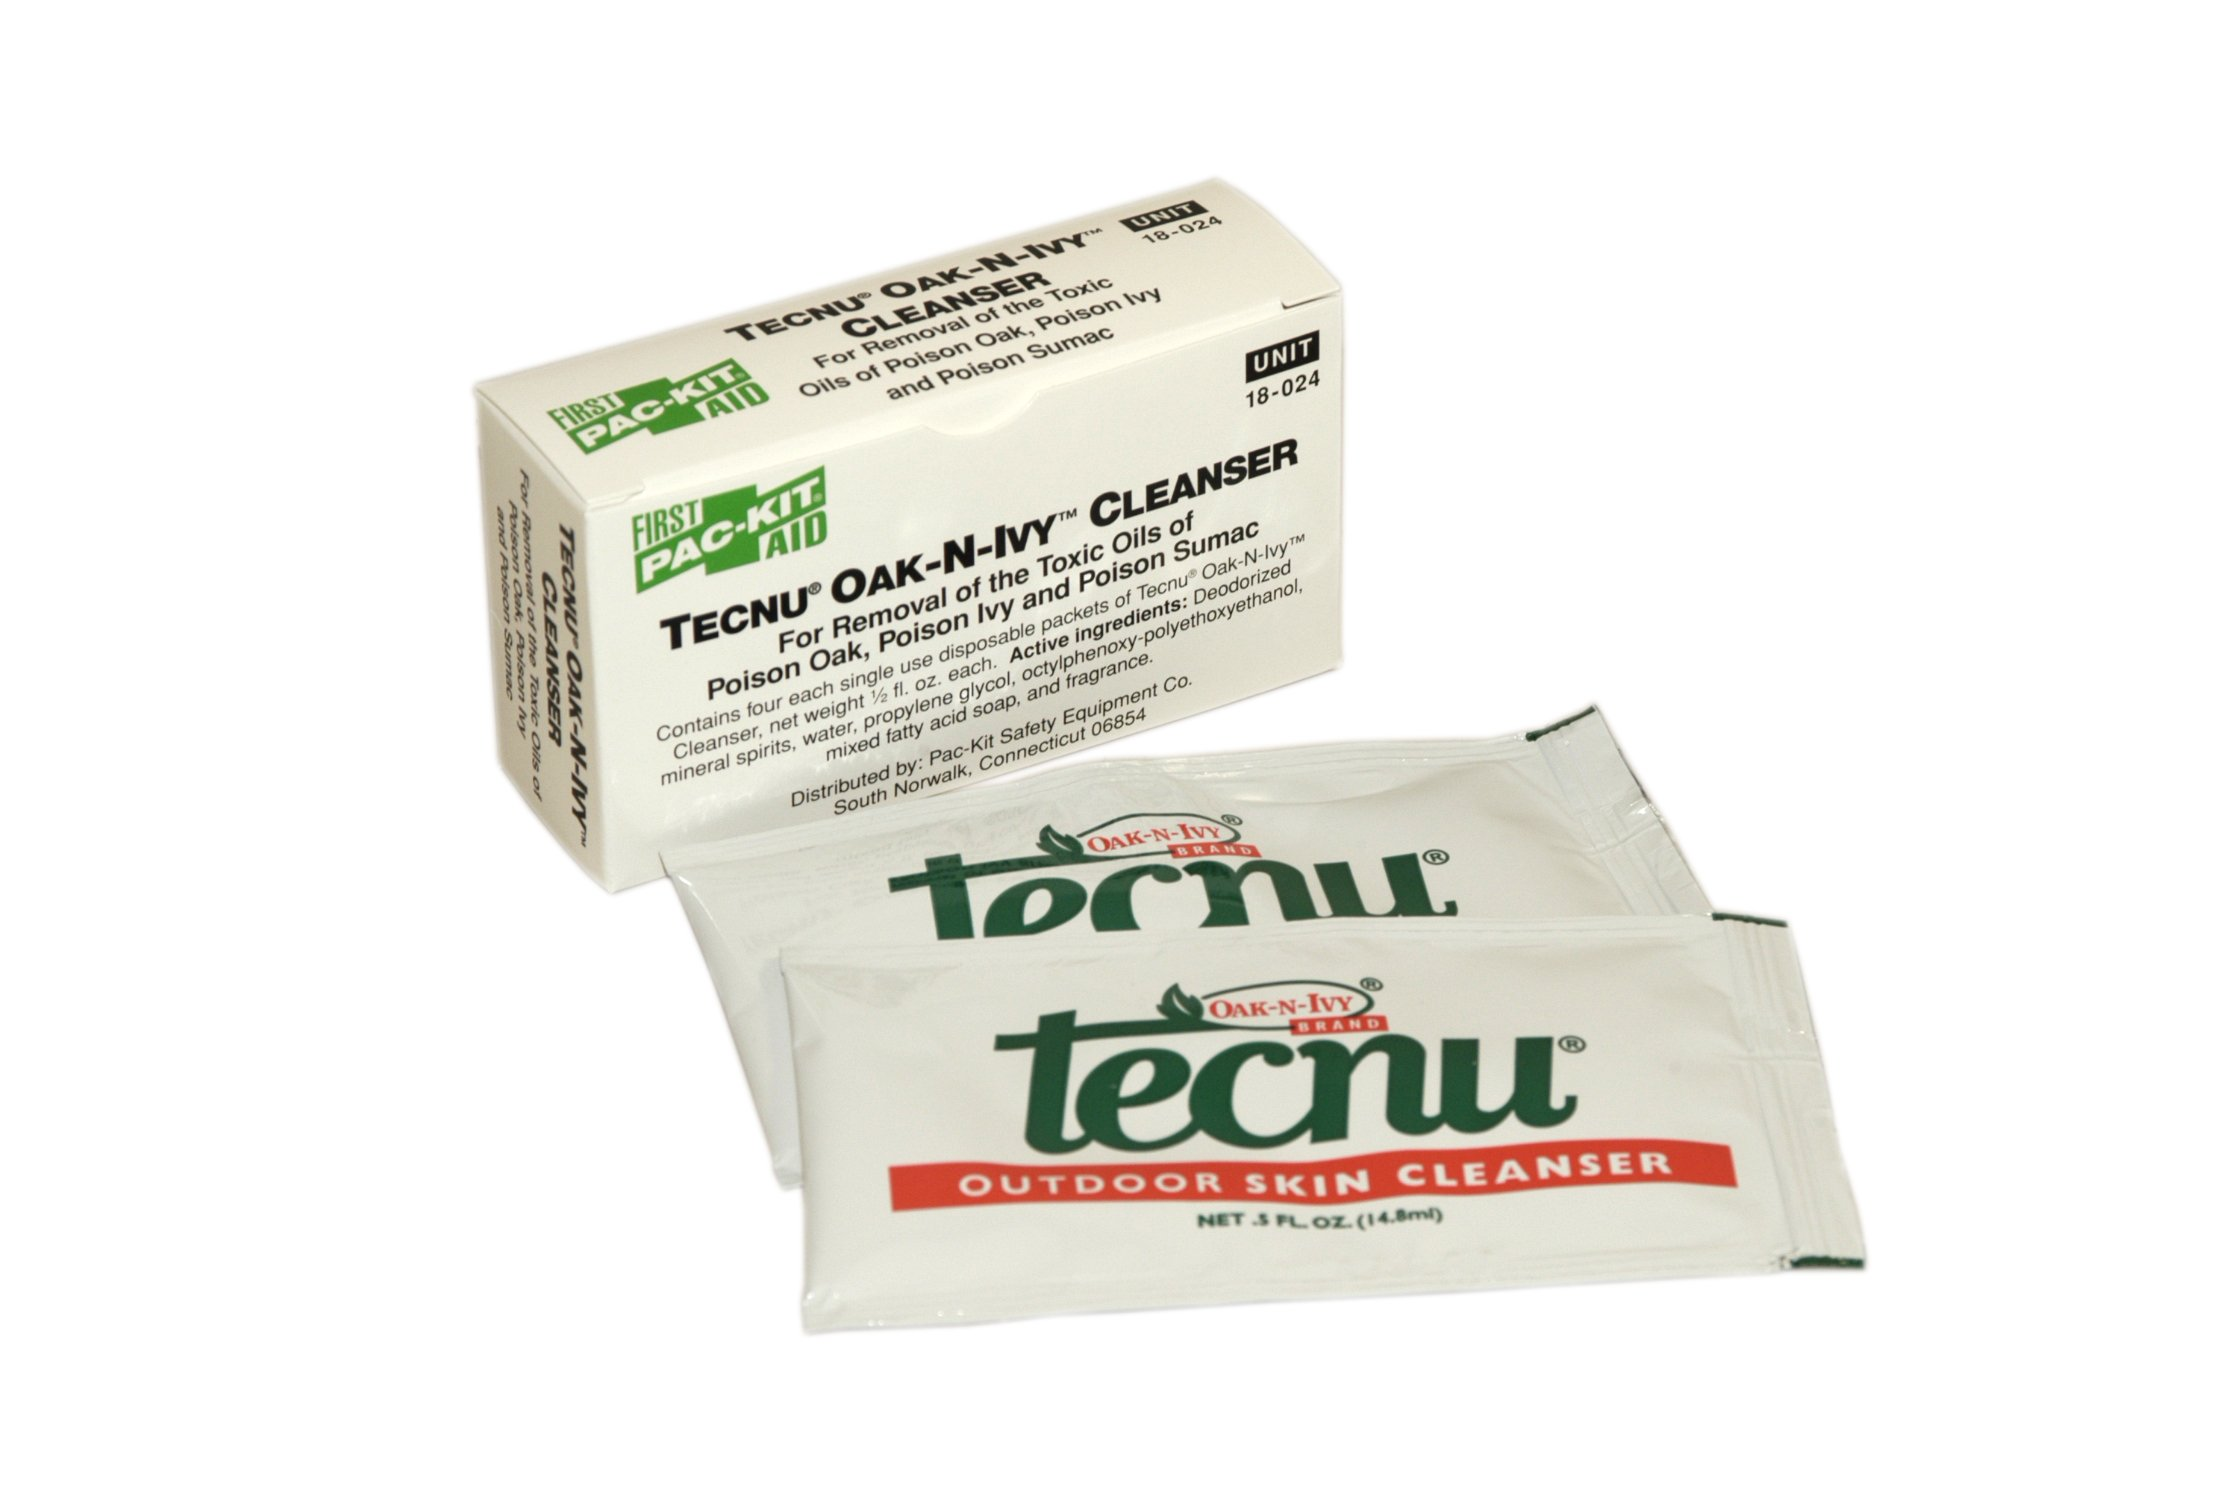 Pac-Kit by First Aid Only 18-024 Tecnu Oak'N'Ivy Cleanser Packet (Box of 4)